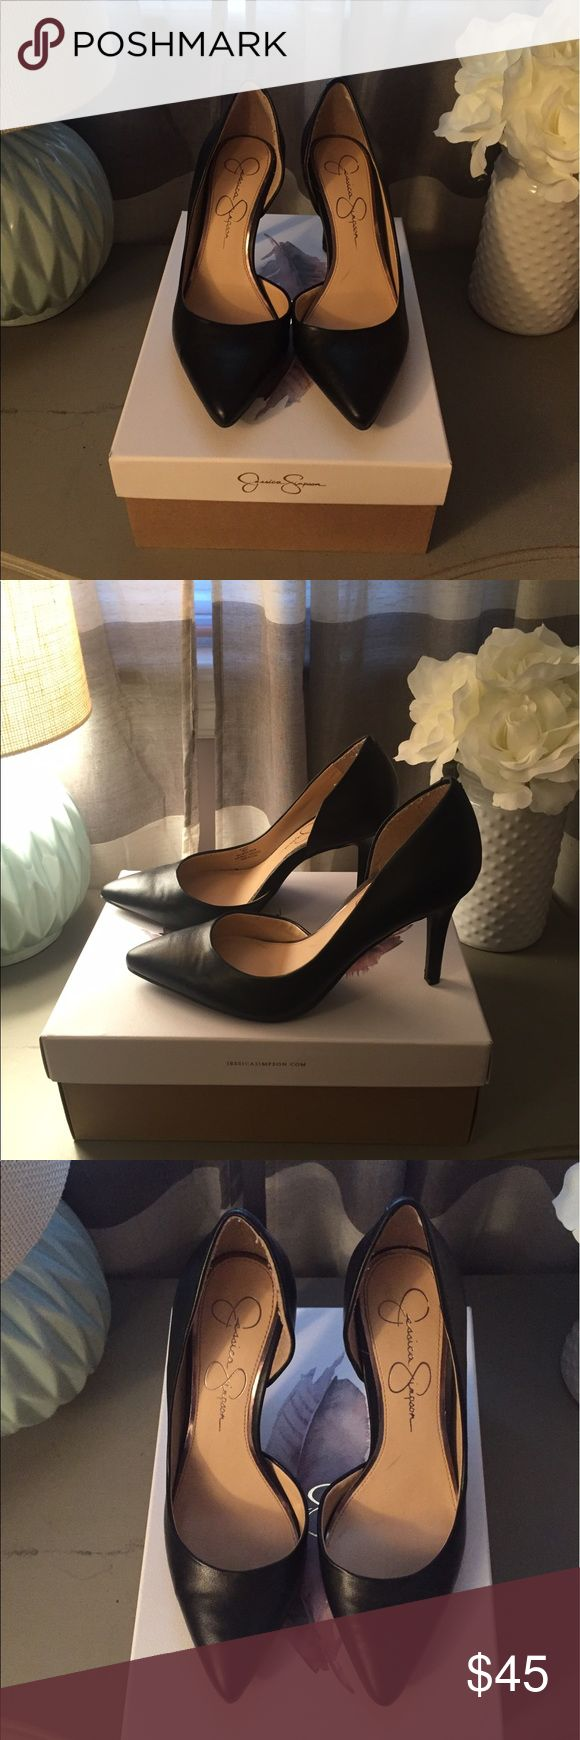 Jessica Simpson black pumps Great shoes, never worn! I have this exact shoe in several other colors and they are very comfortable. I bought a half a size too small thinking I could make it work but they are simply too small for me :( Jessica Simpson Shoes Heels